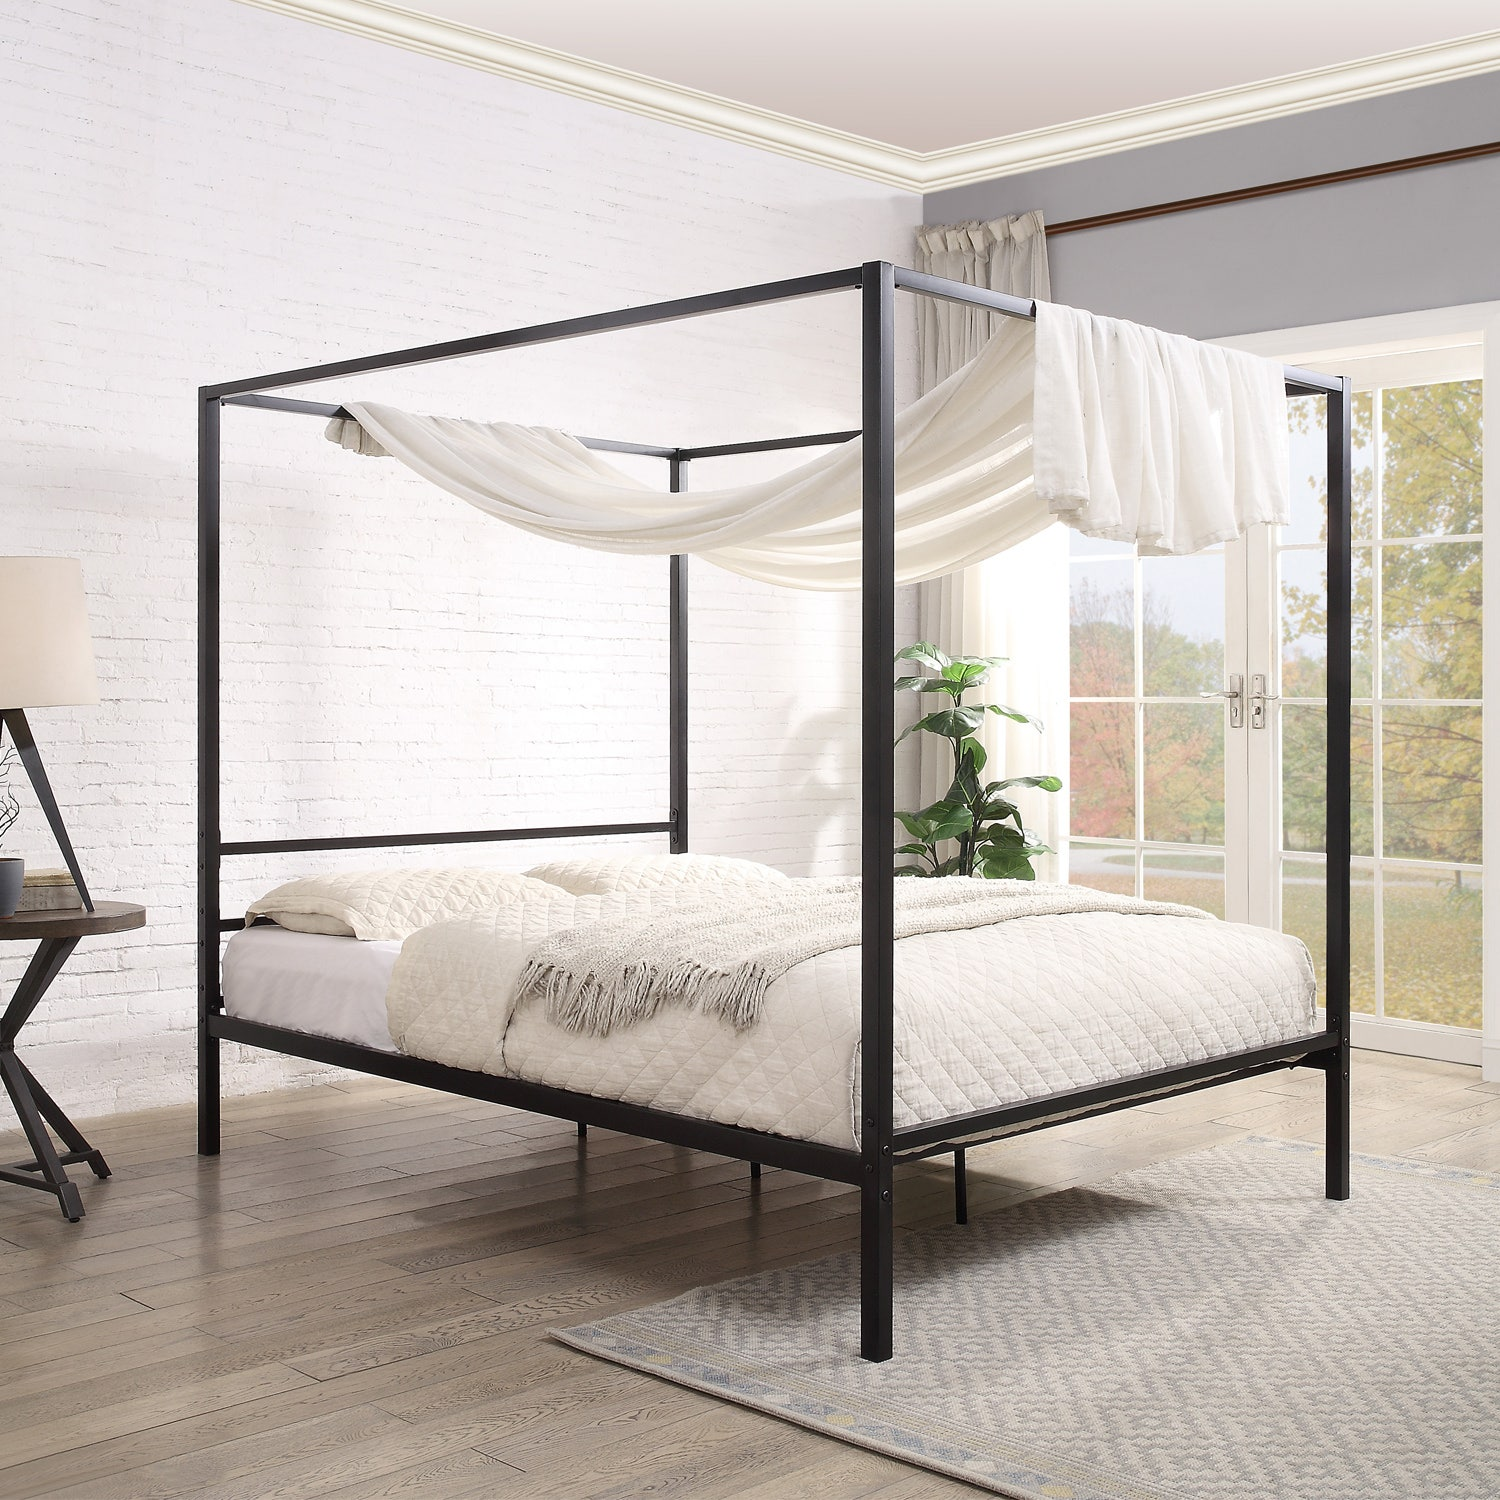 Chalfont Black Four Poster Metal Bed Frame Single Small Double Double King Sizes Crazypricebeds Com